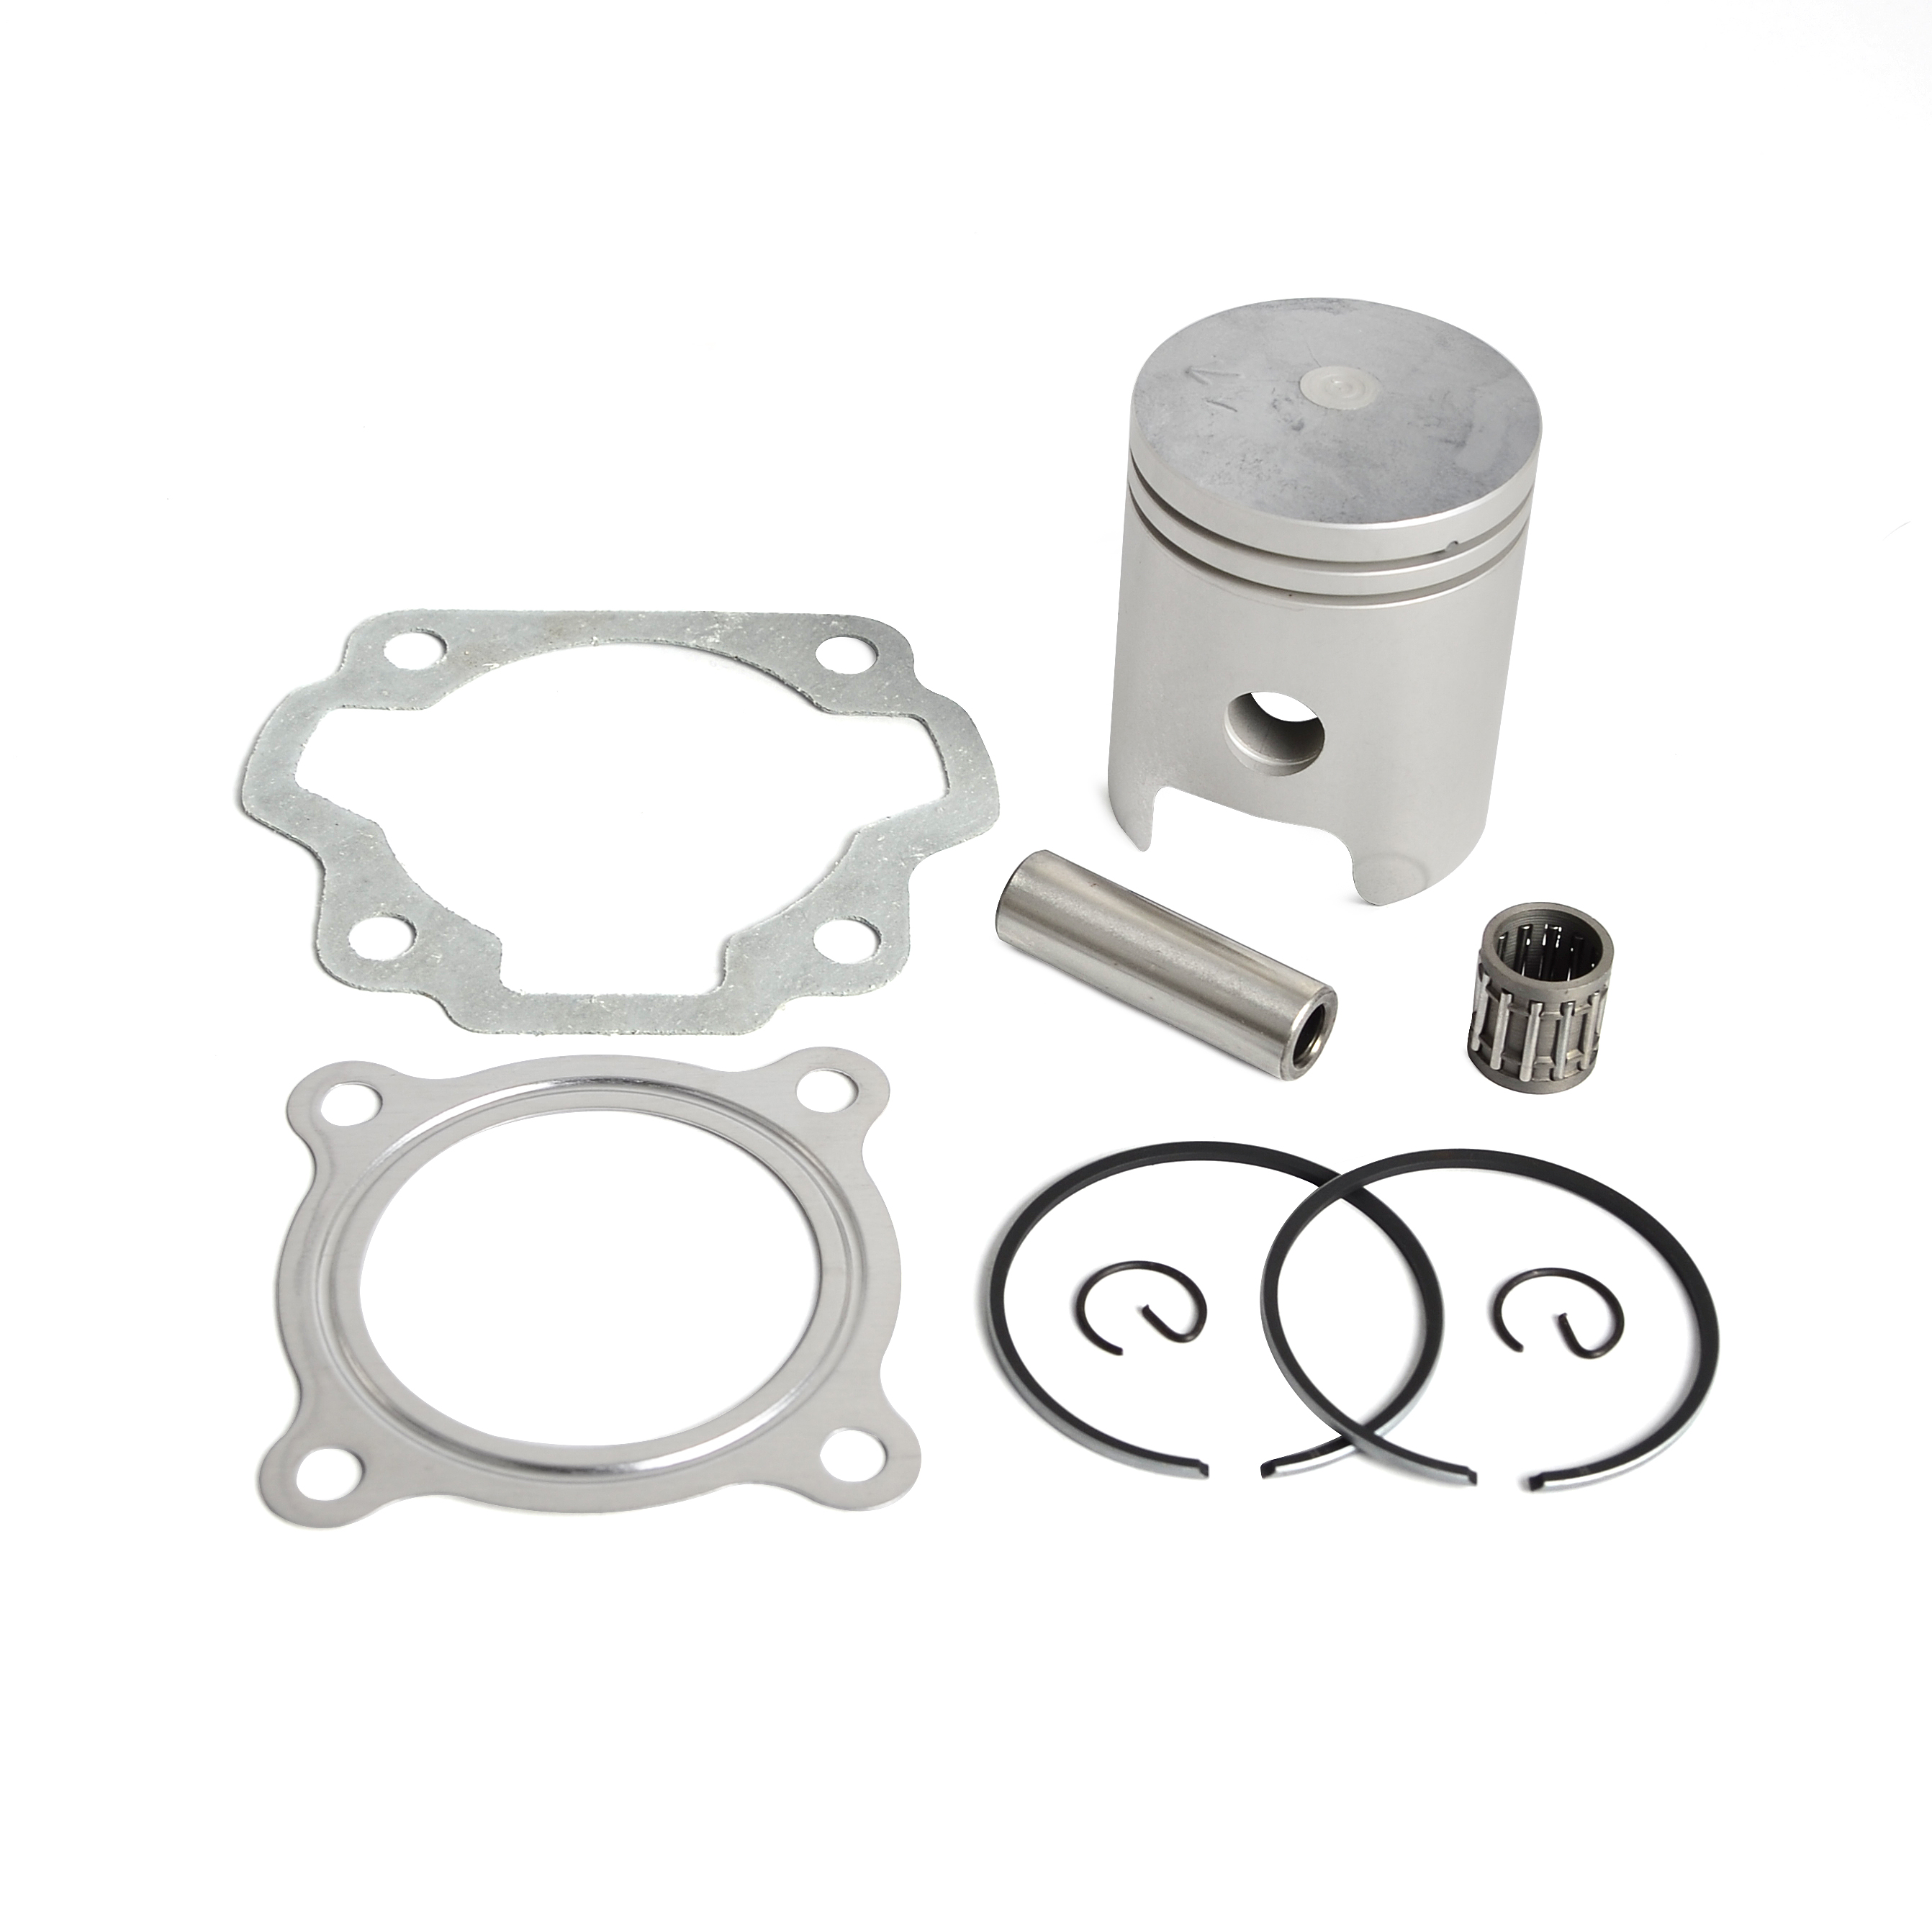 Motorcycle Piston & Bearing Pin Kit For Yamaha PW80 PW 80 Dirt Bike 1999-2006